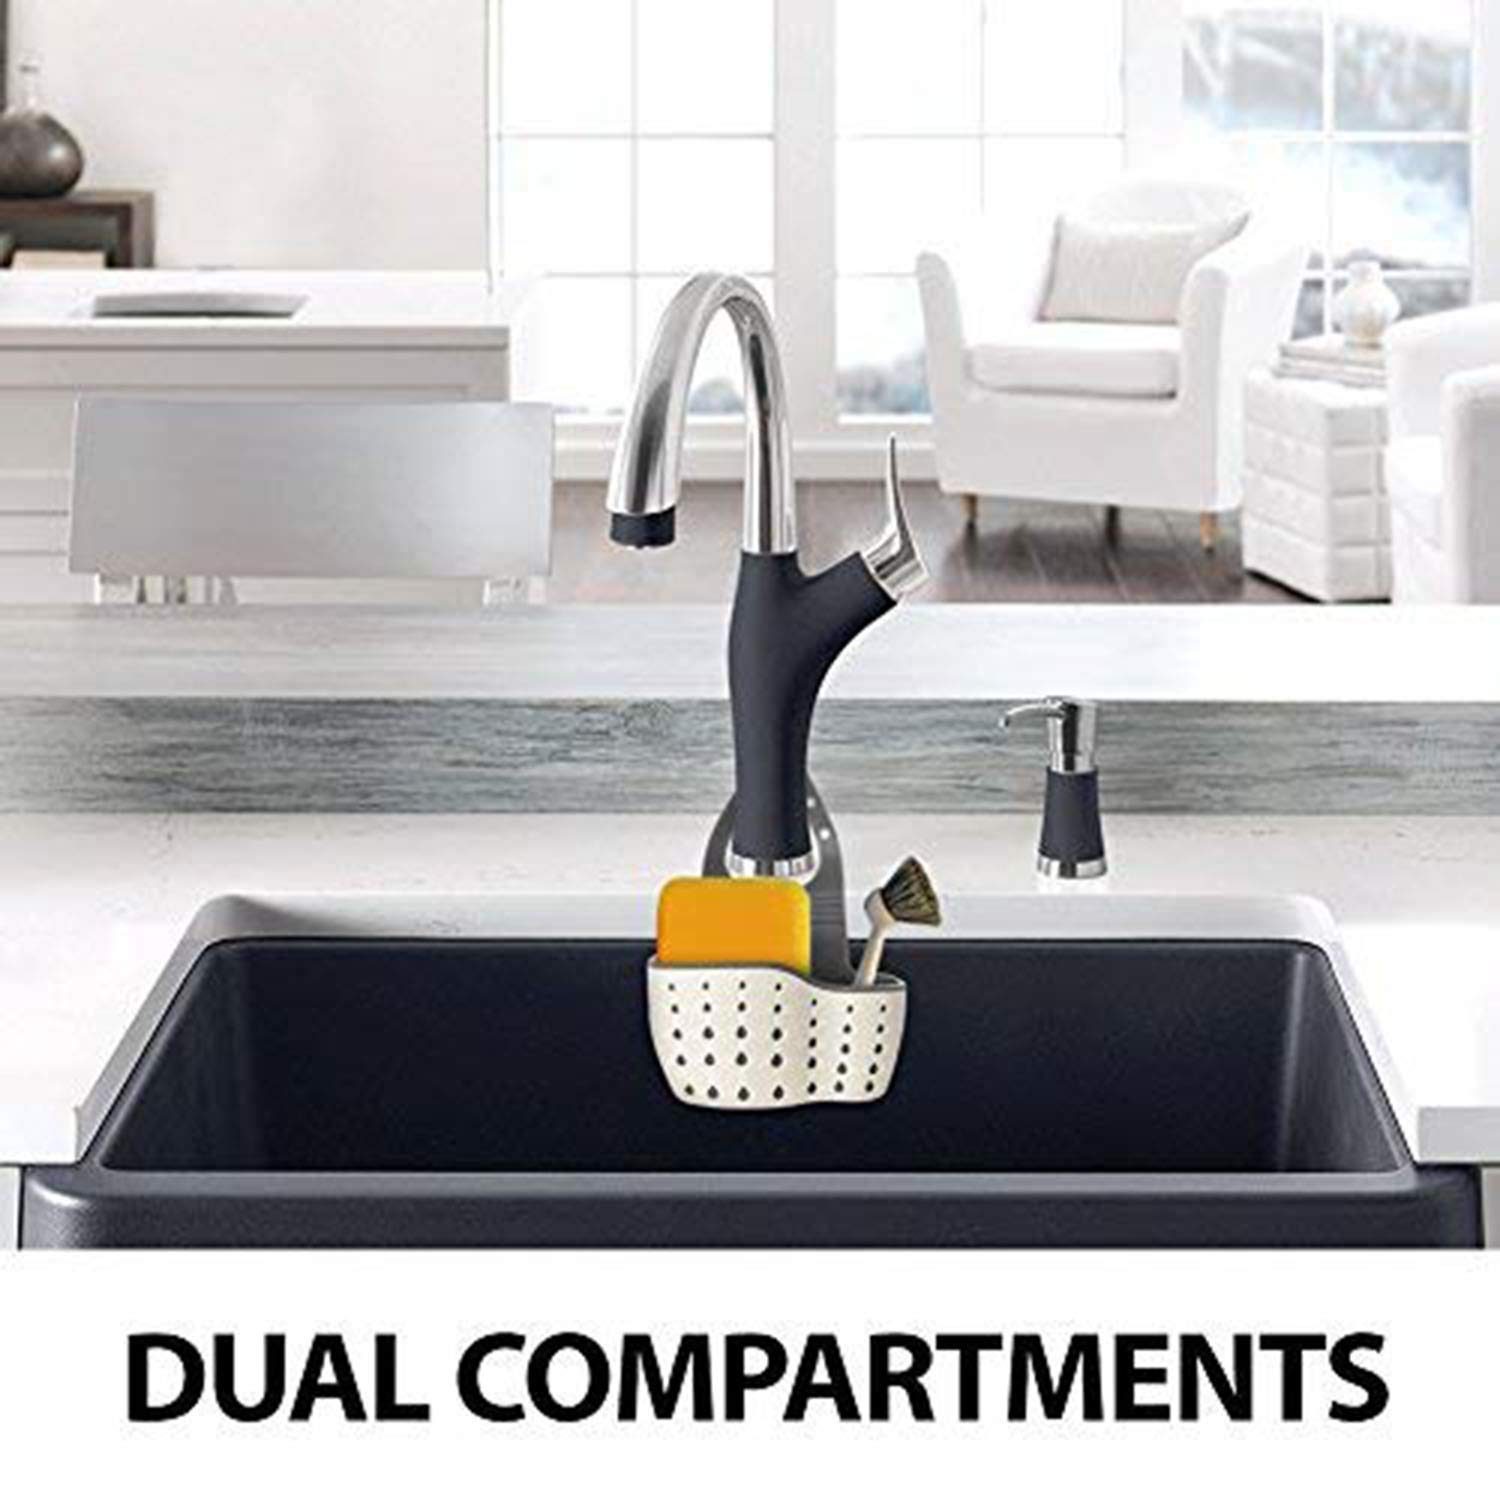 Antimicrobial Drain Holes for Sanitary Drying Beaverve 2PCS Sink Caddy Kitchen Plastic Sink Caddy Sponge Holder Faucet Caddy with Adjustable Strap Silicone Sponge Holder for Kitchen Sink